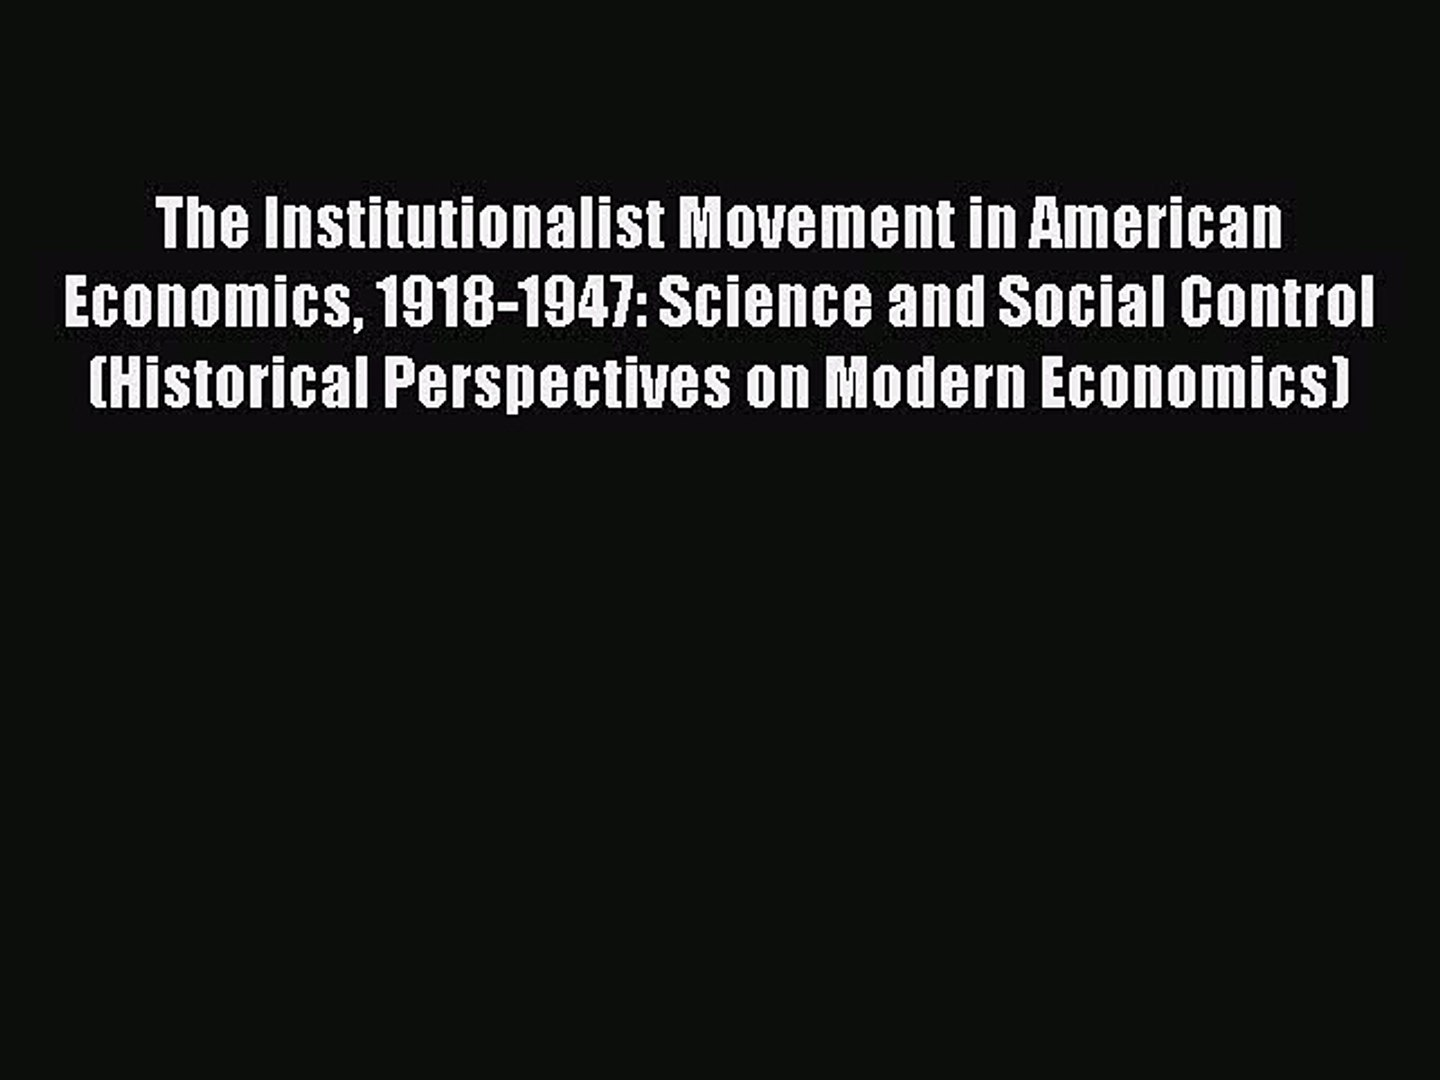 Read The Institutionalist Movement in American Economics 1918-1947: Science and Social Control